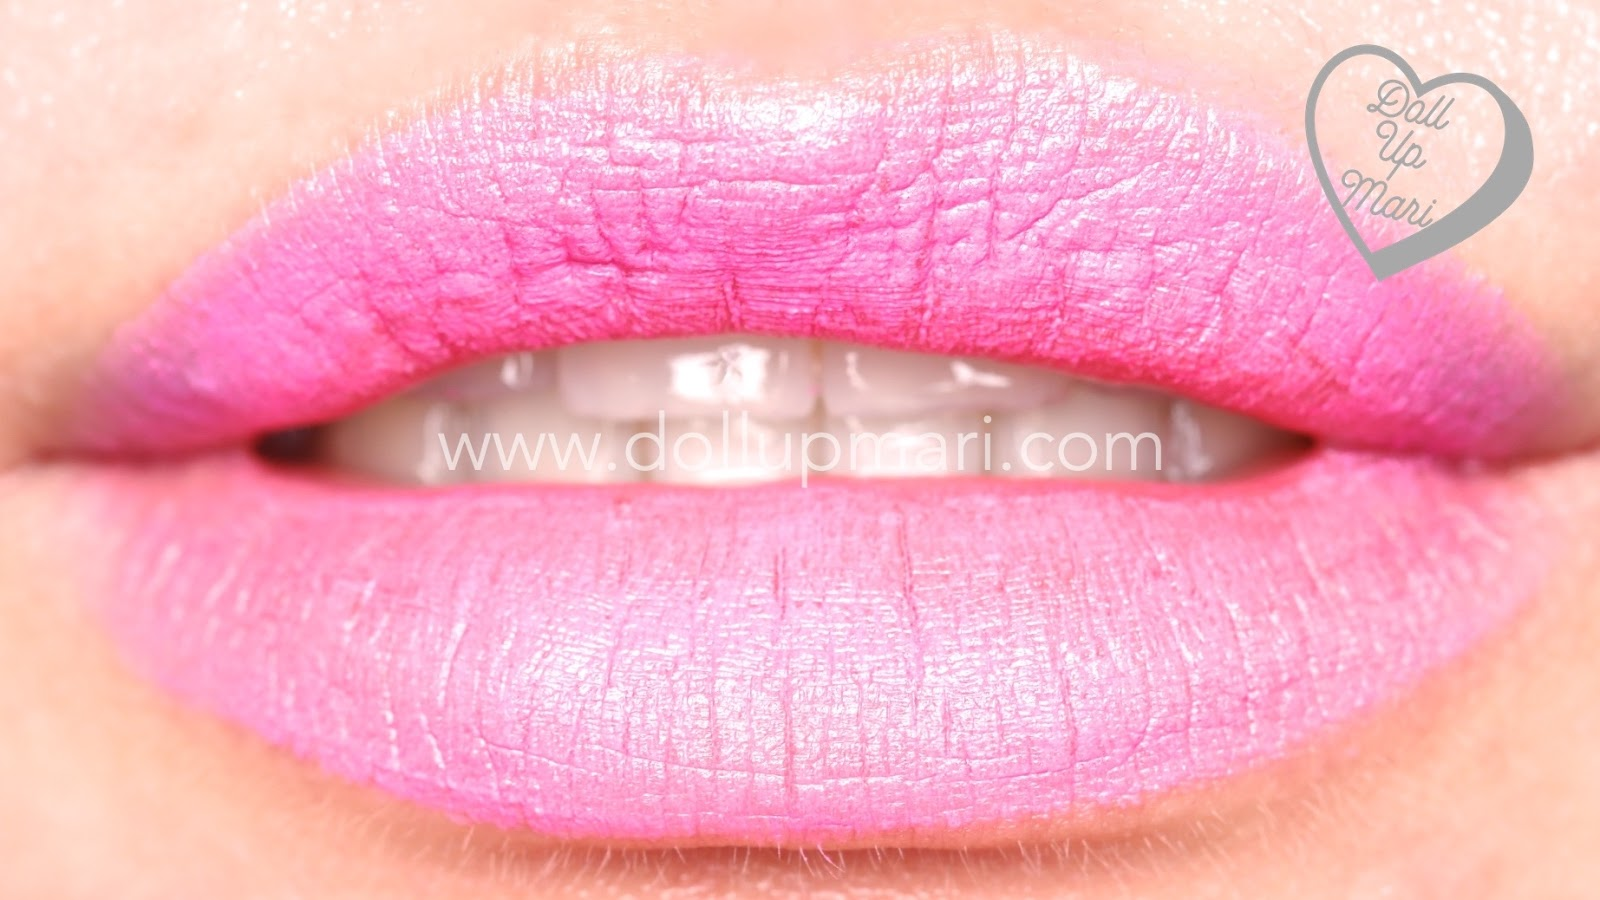 Lip Swatch of Electric Pink shade of AVON Perfectly Matte Lipstick